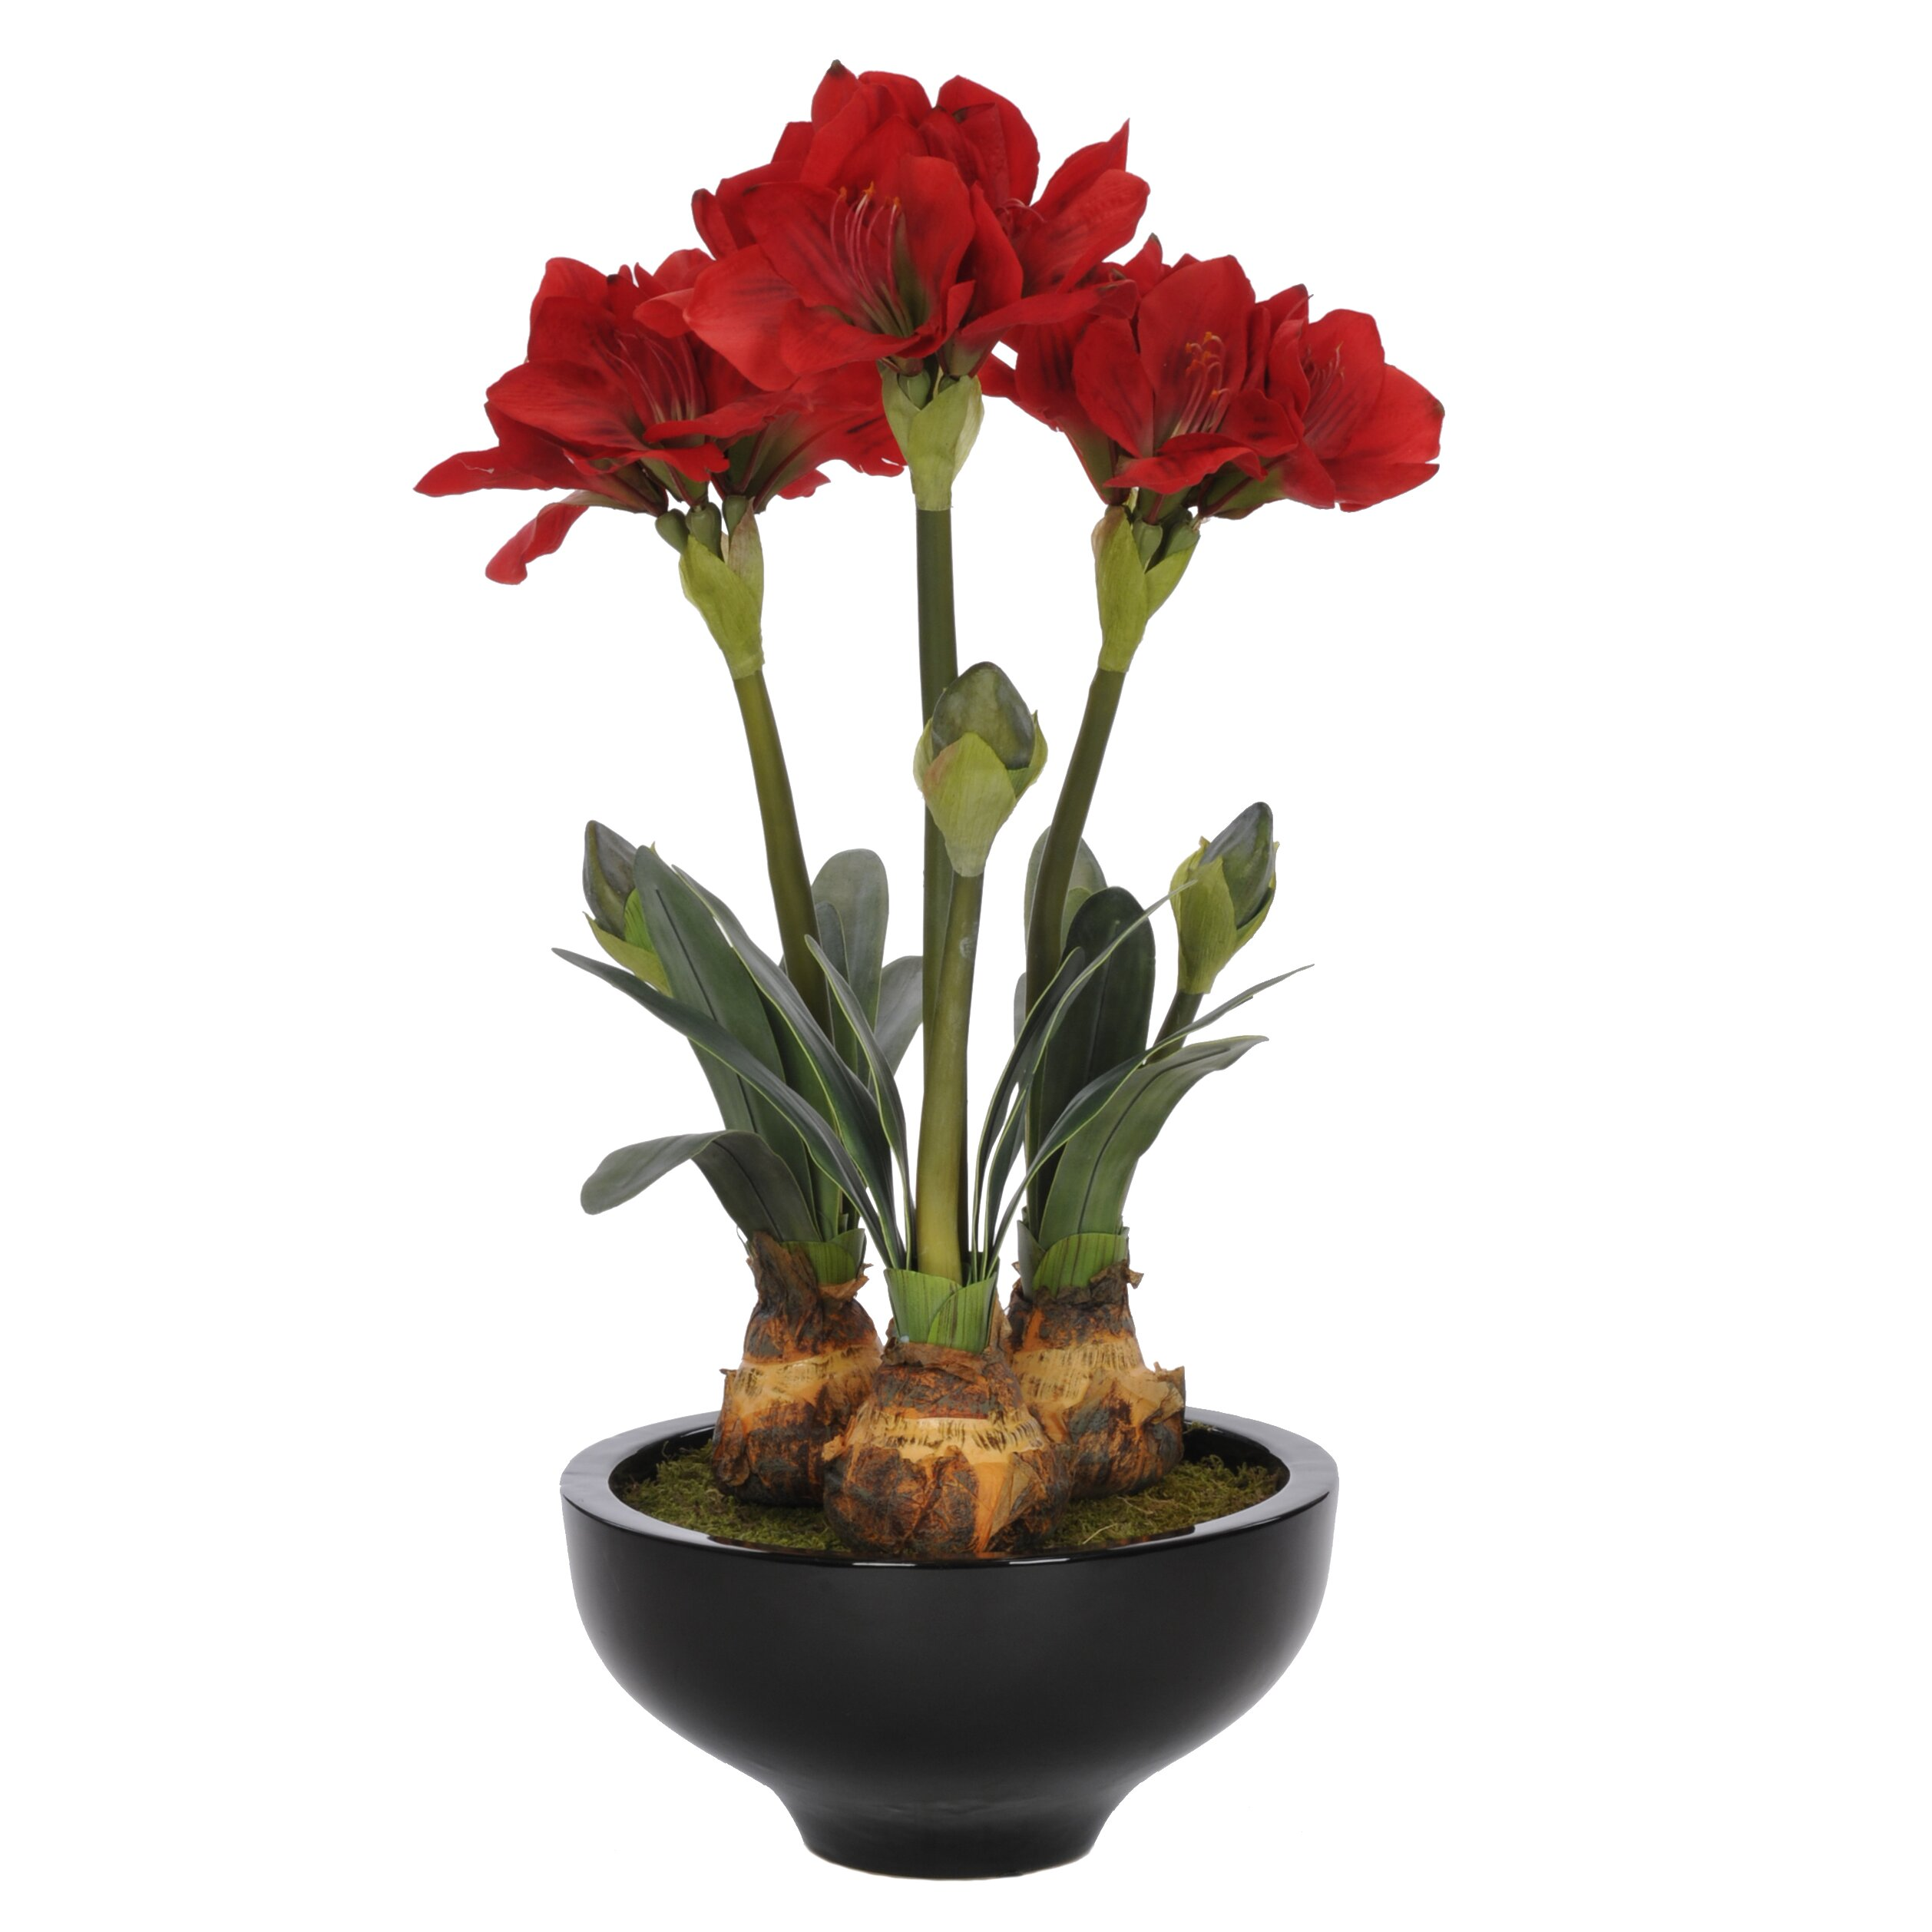 Flower Pots With Artificial Flowers Artificial Amaryllis In Pot Hf Rb